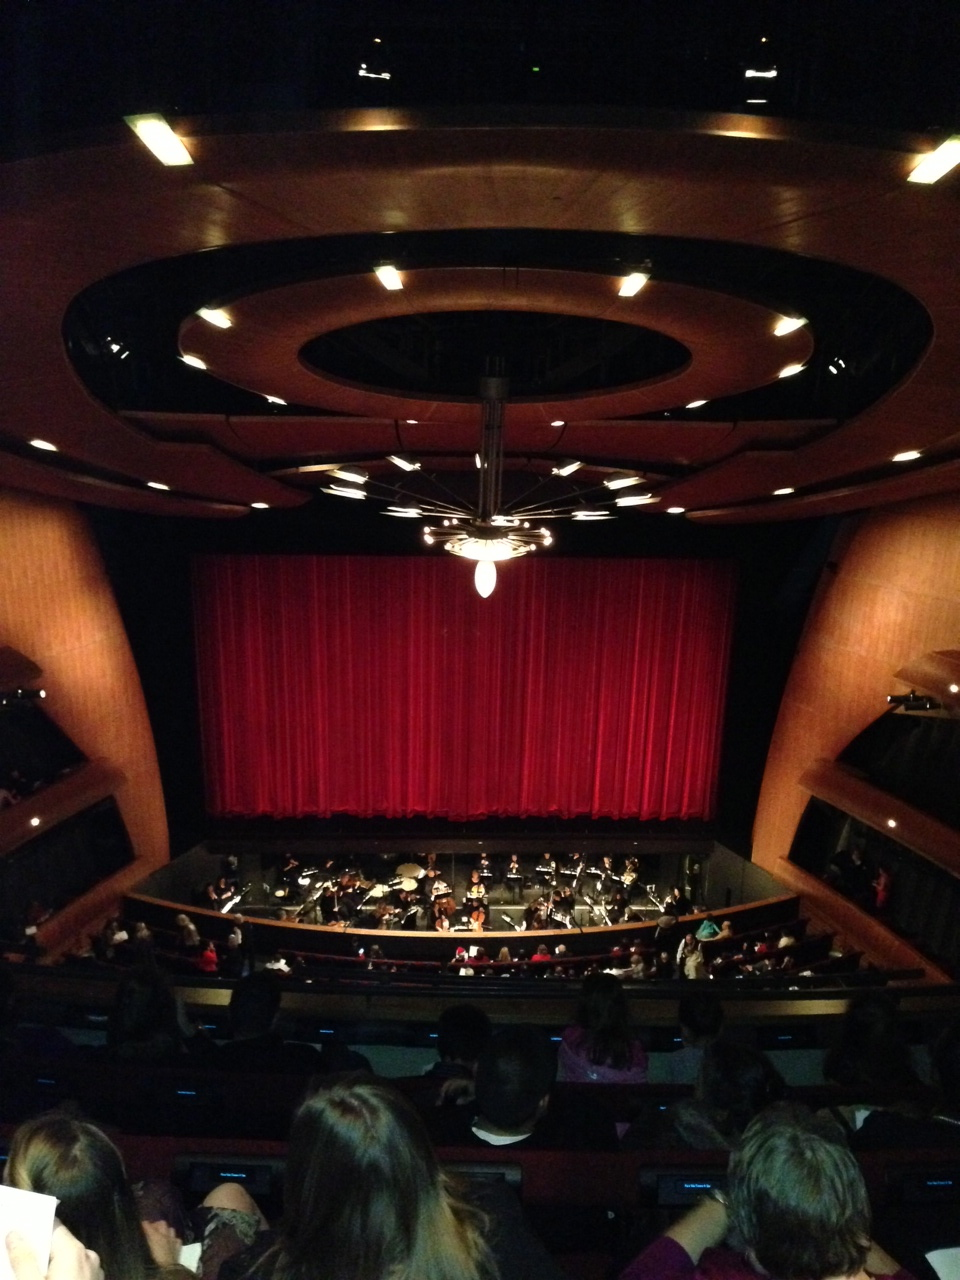 Kate took this photo illegally. We're hoping one day we will graduate out of the upper balcony.